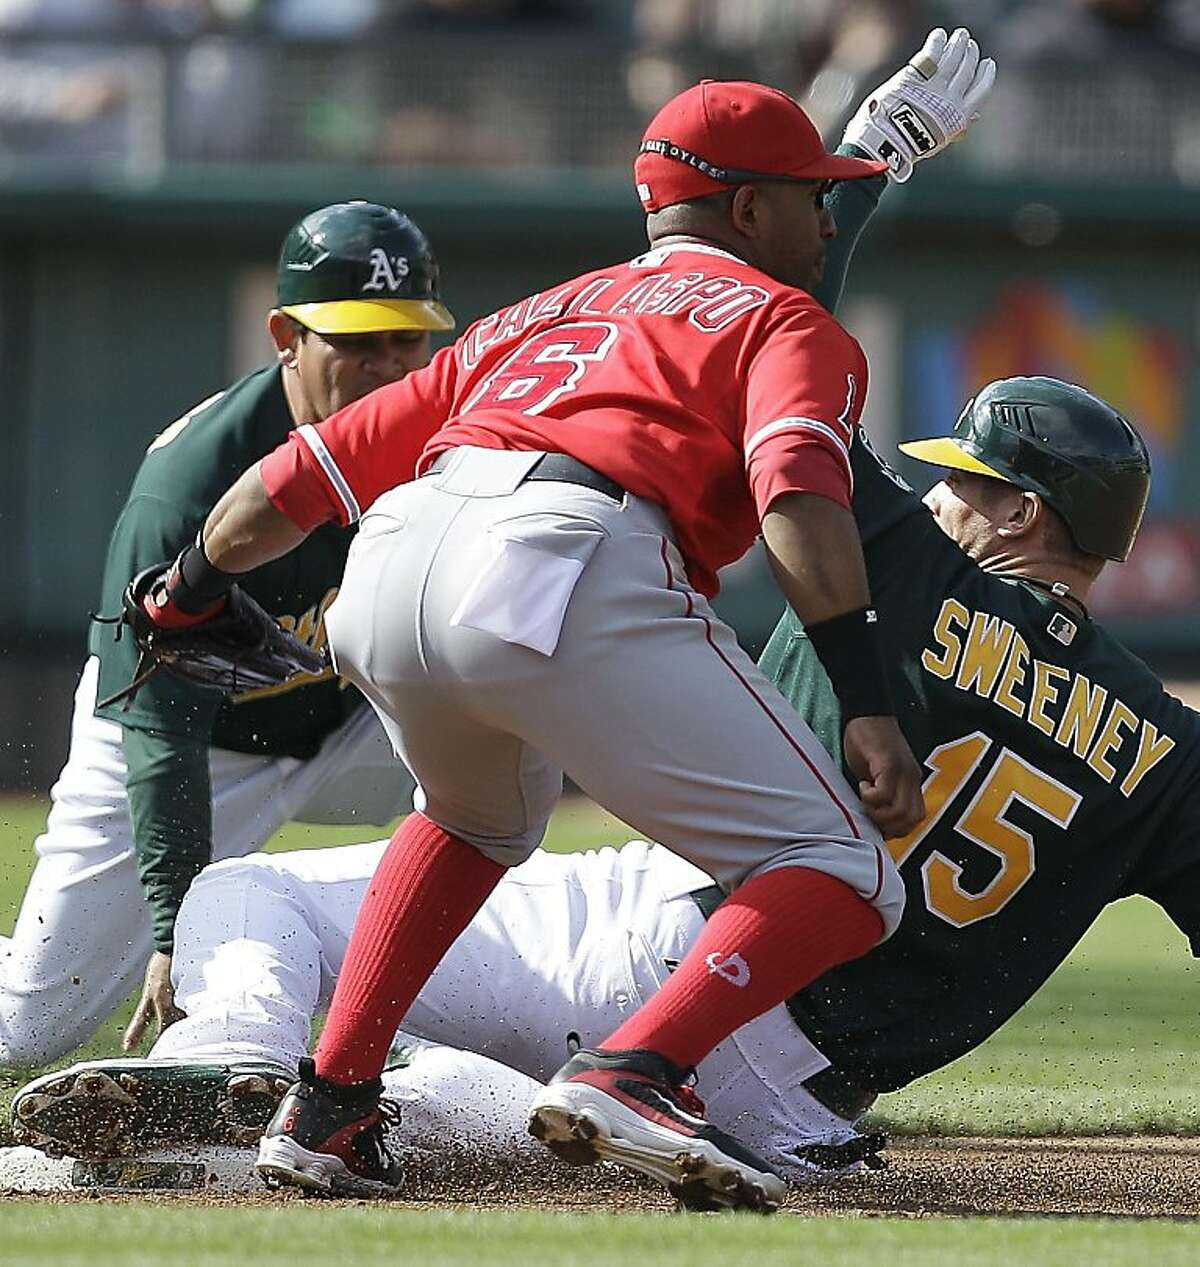 Los Angeles Angels third baseman Alberto Callaspo (6) tags out Oakland Athletics' Ryan Sweeney (15) during the first inning of the second baseball game of a doubleheader, Saturday, July 16, 2011, in Oakland, Calif. Sweeney was attempting to stretch a double into a triple.